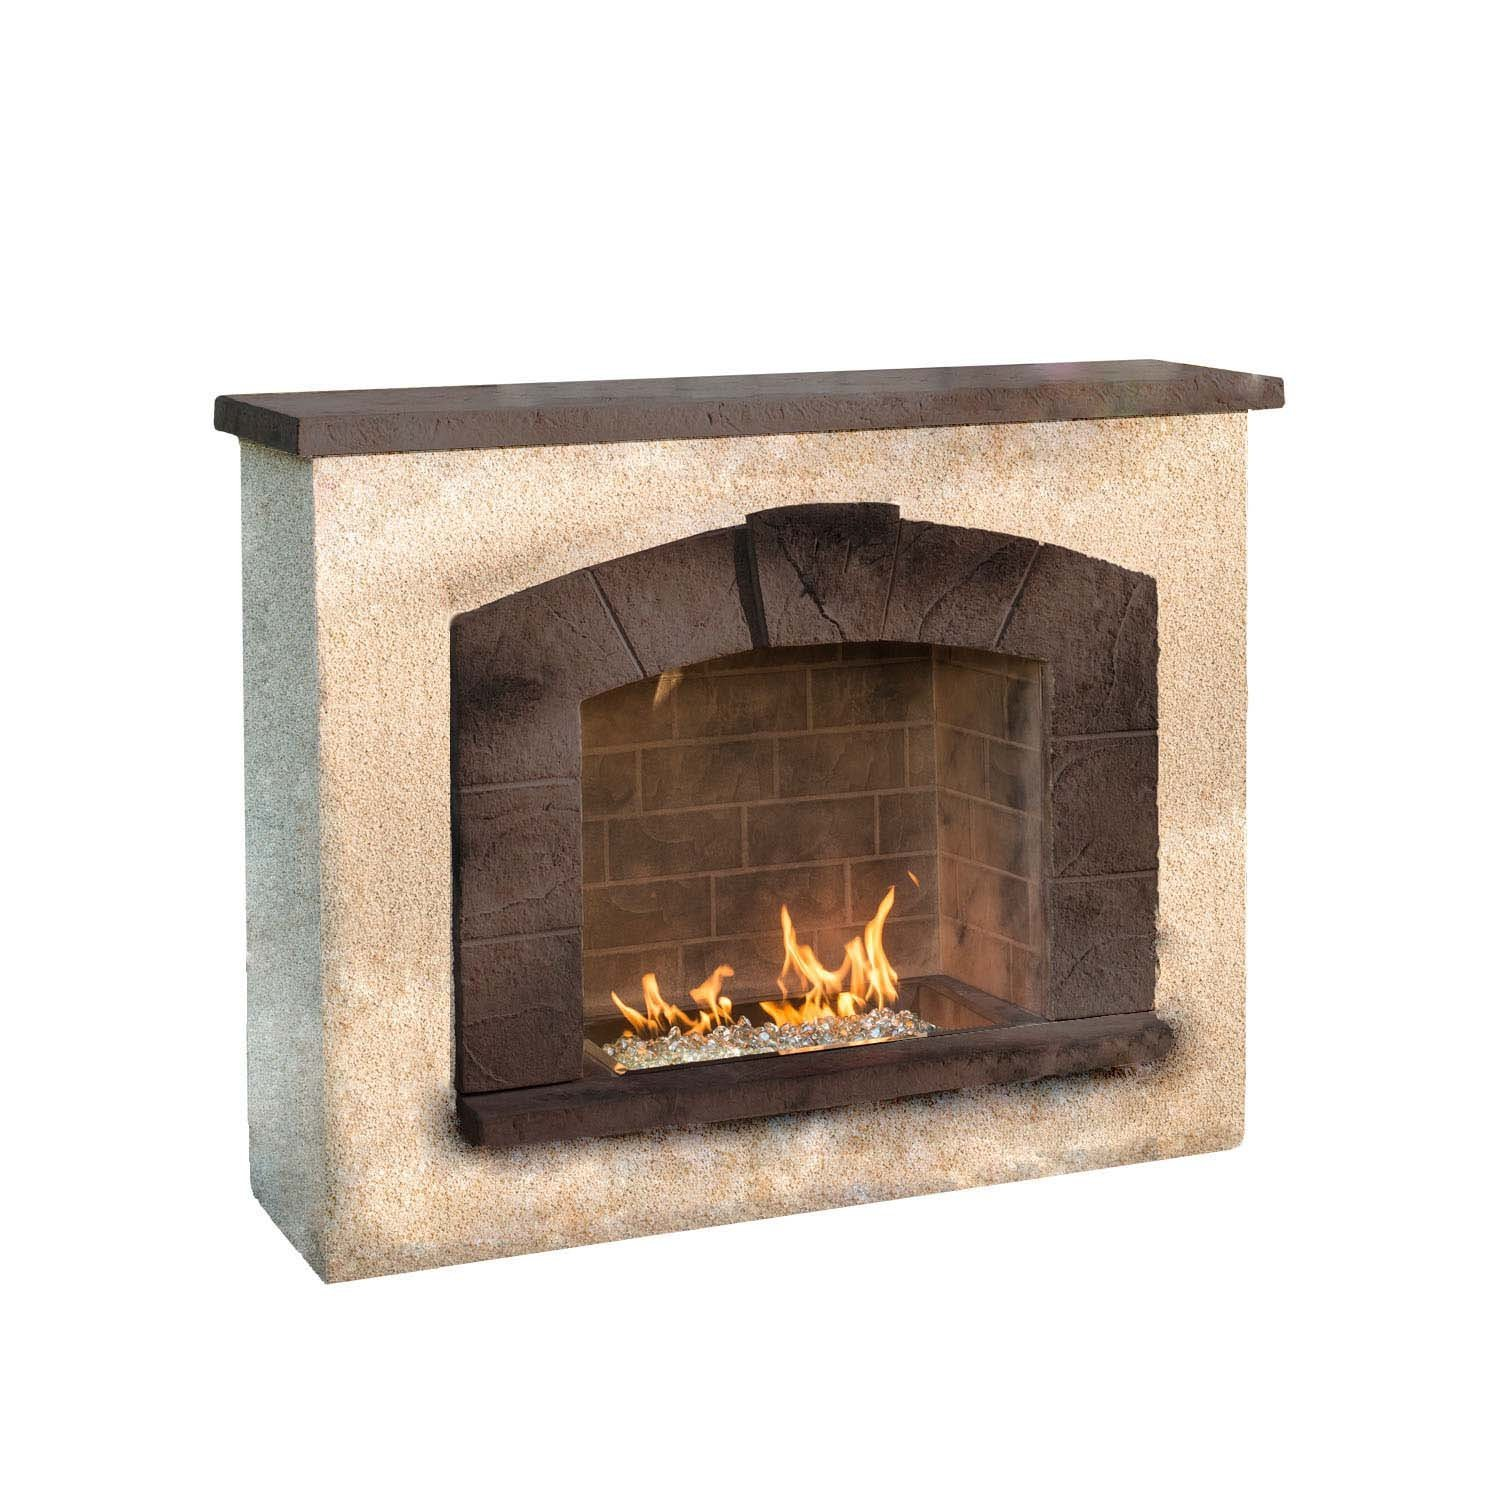 wood gas stone dark design firepalce veneer with stones natural mantel fireplace home